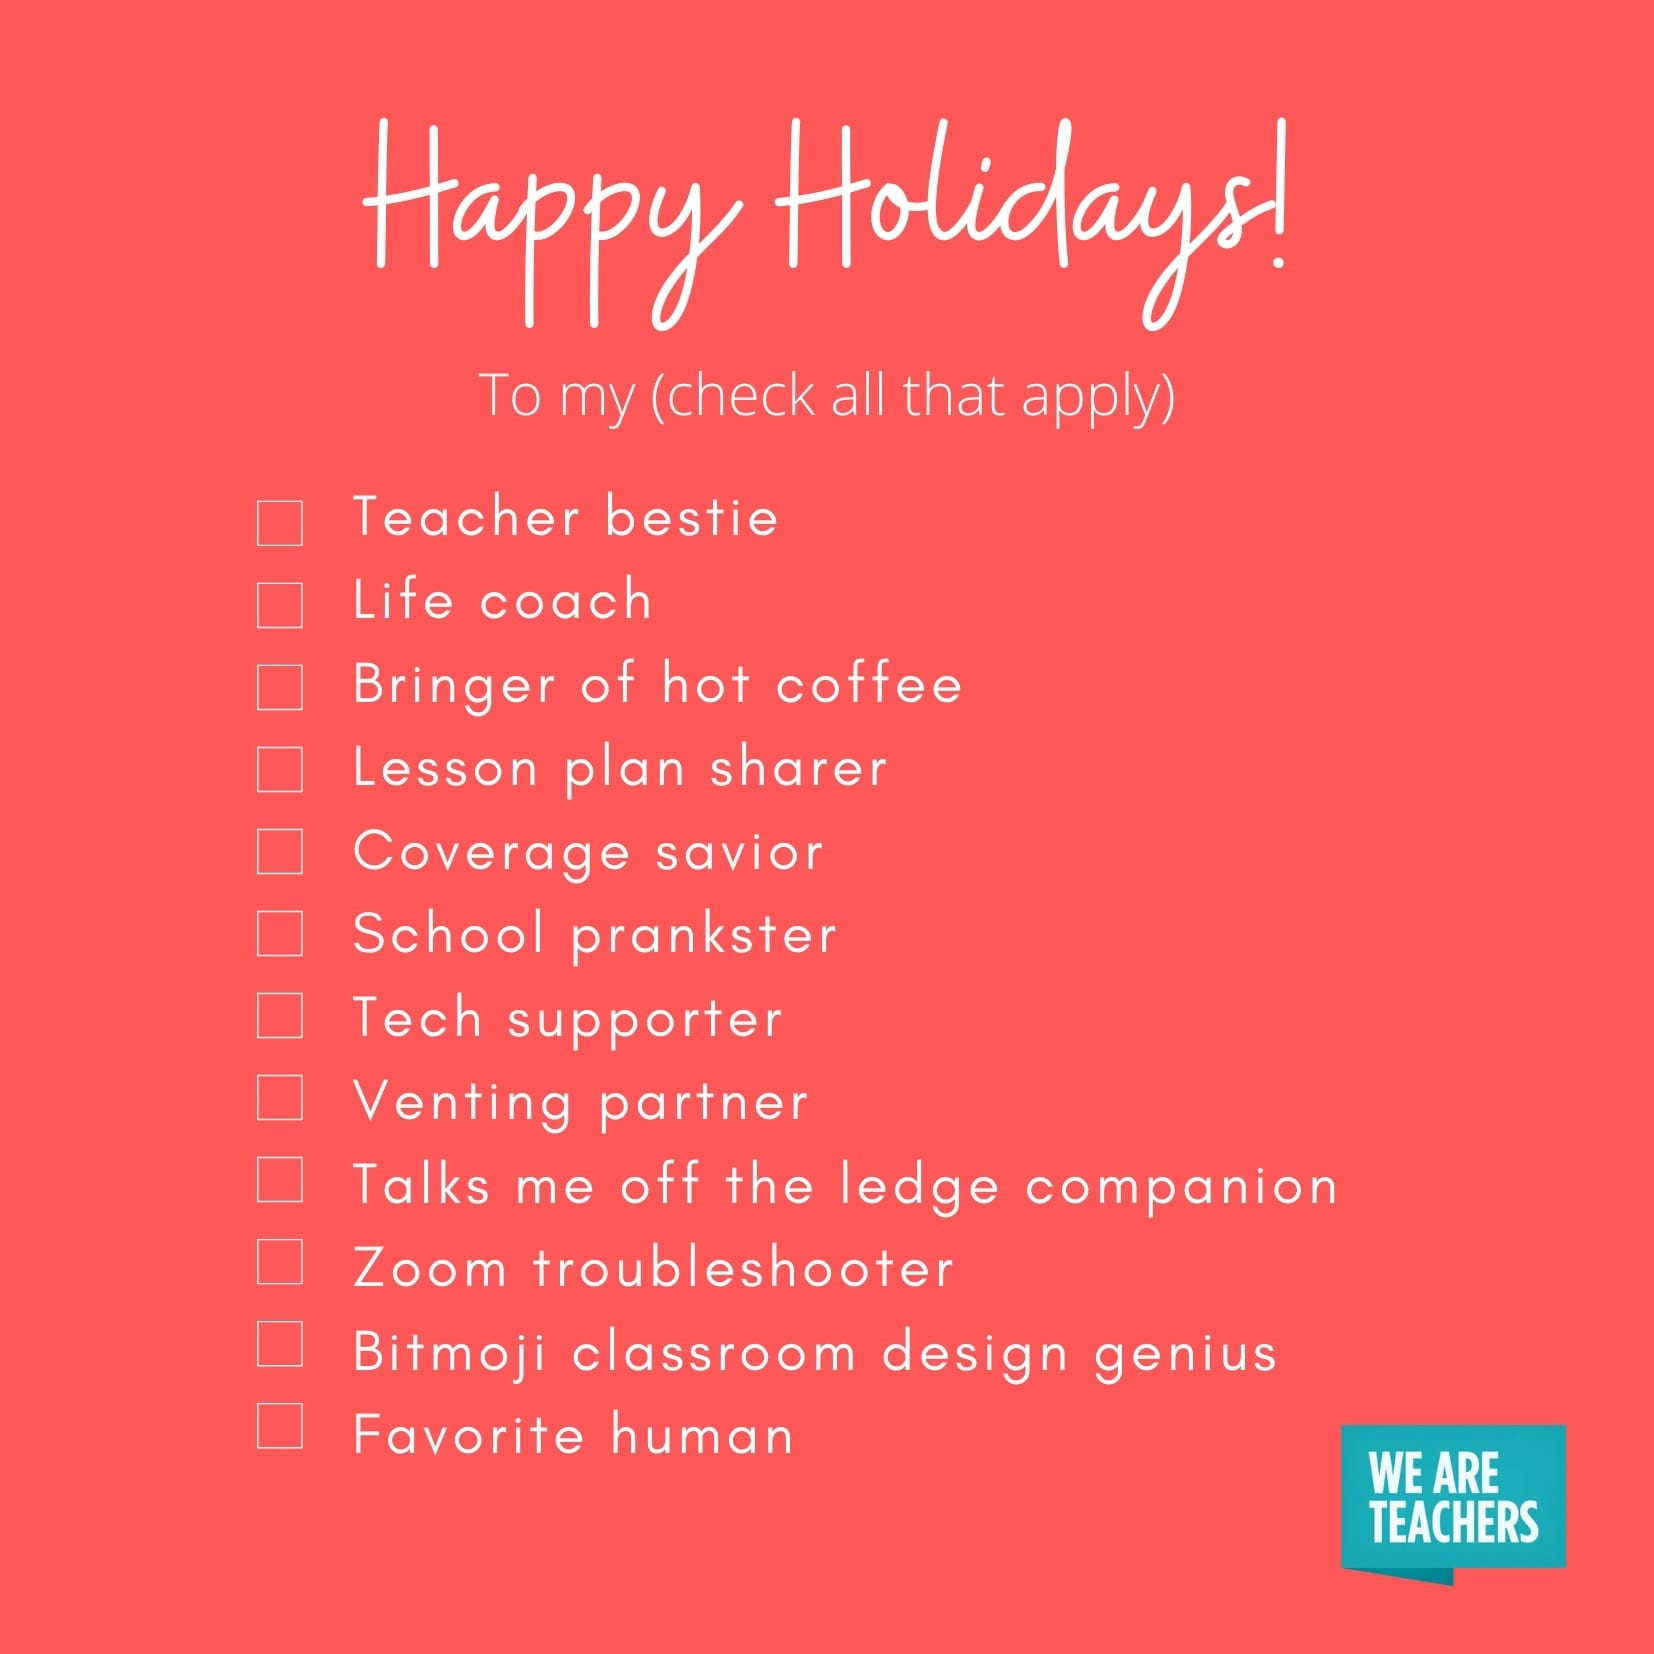 Teacher bestie holiday card